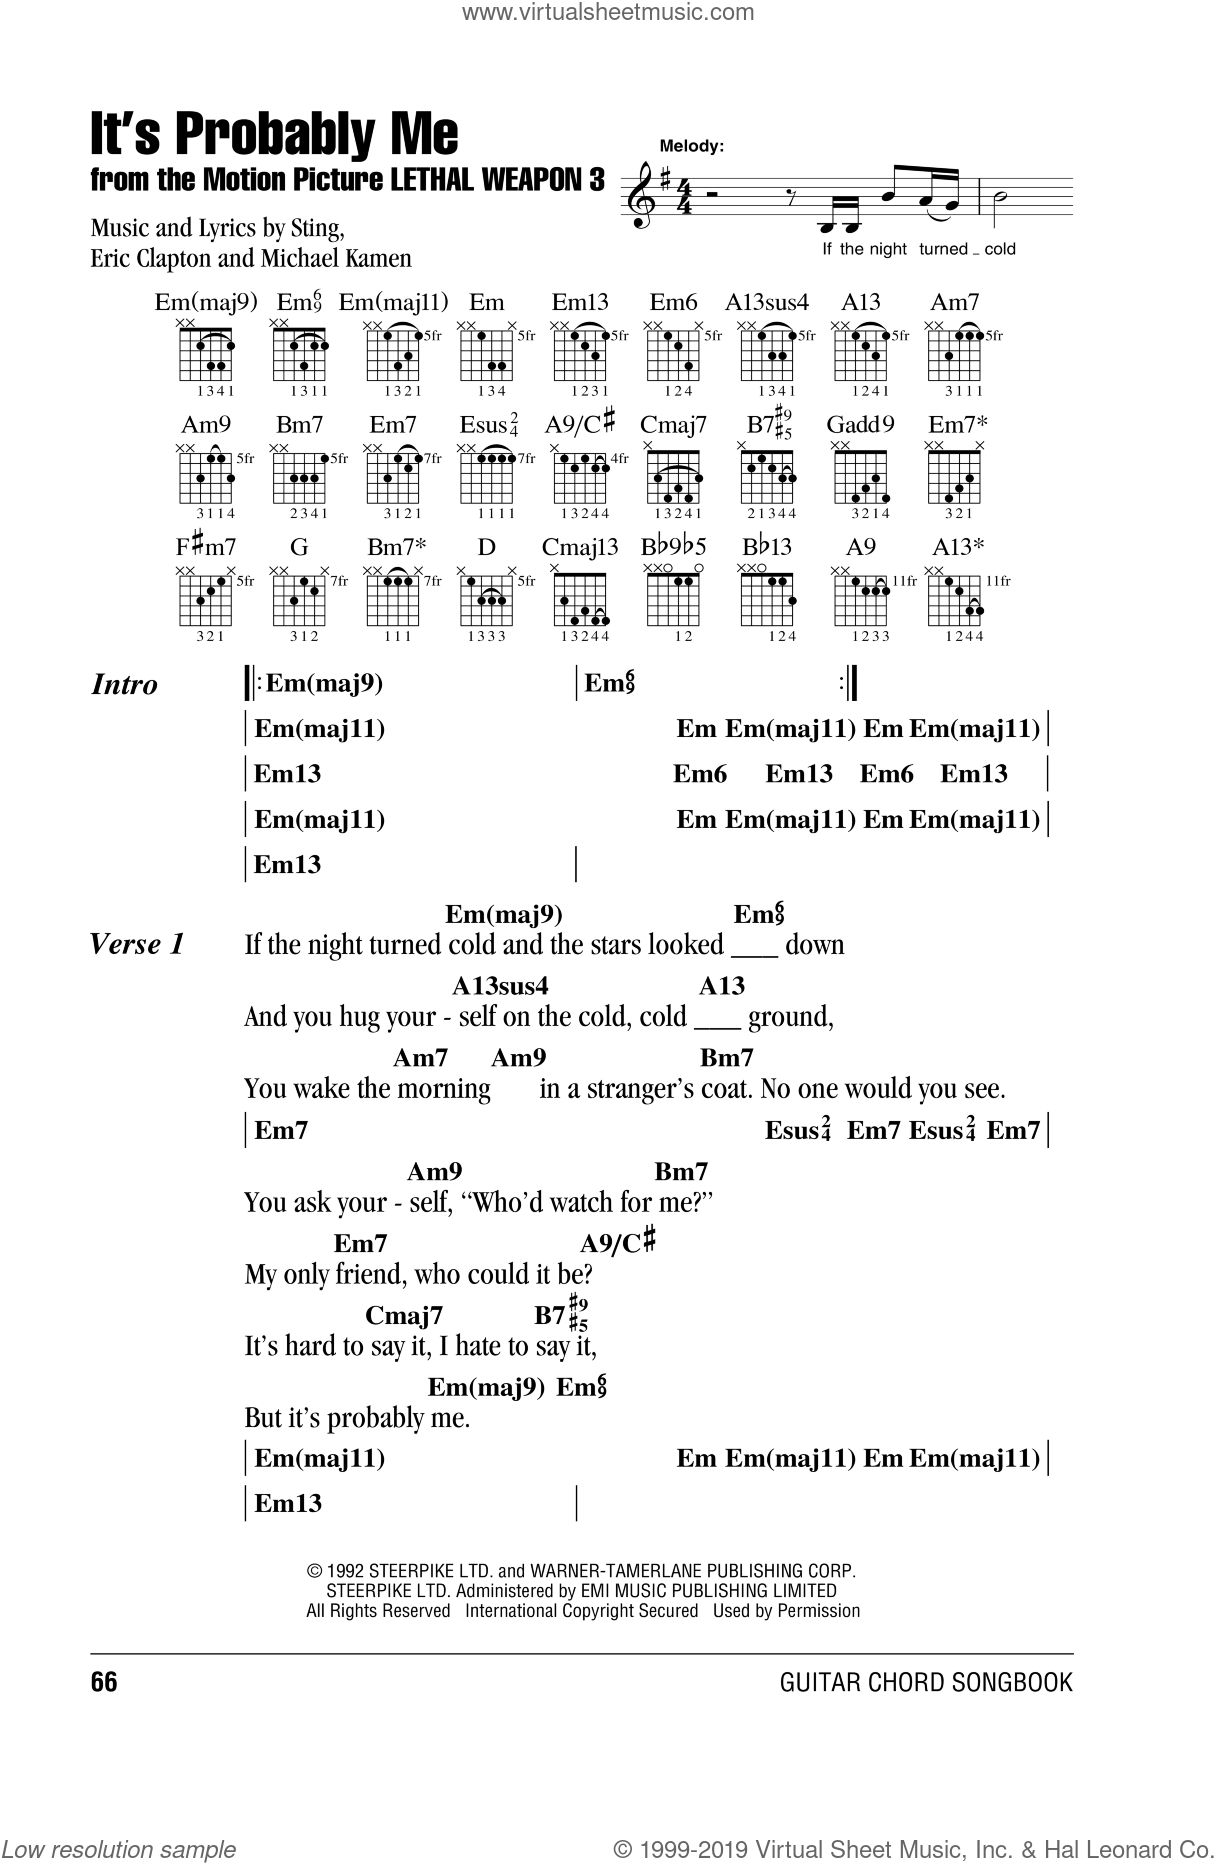 Sting Its Probably Me Sheet Music For Guitar Chords Pdf